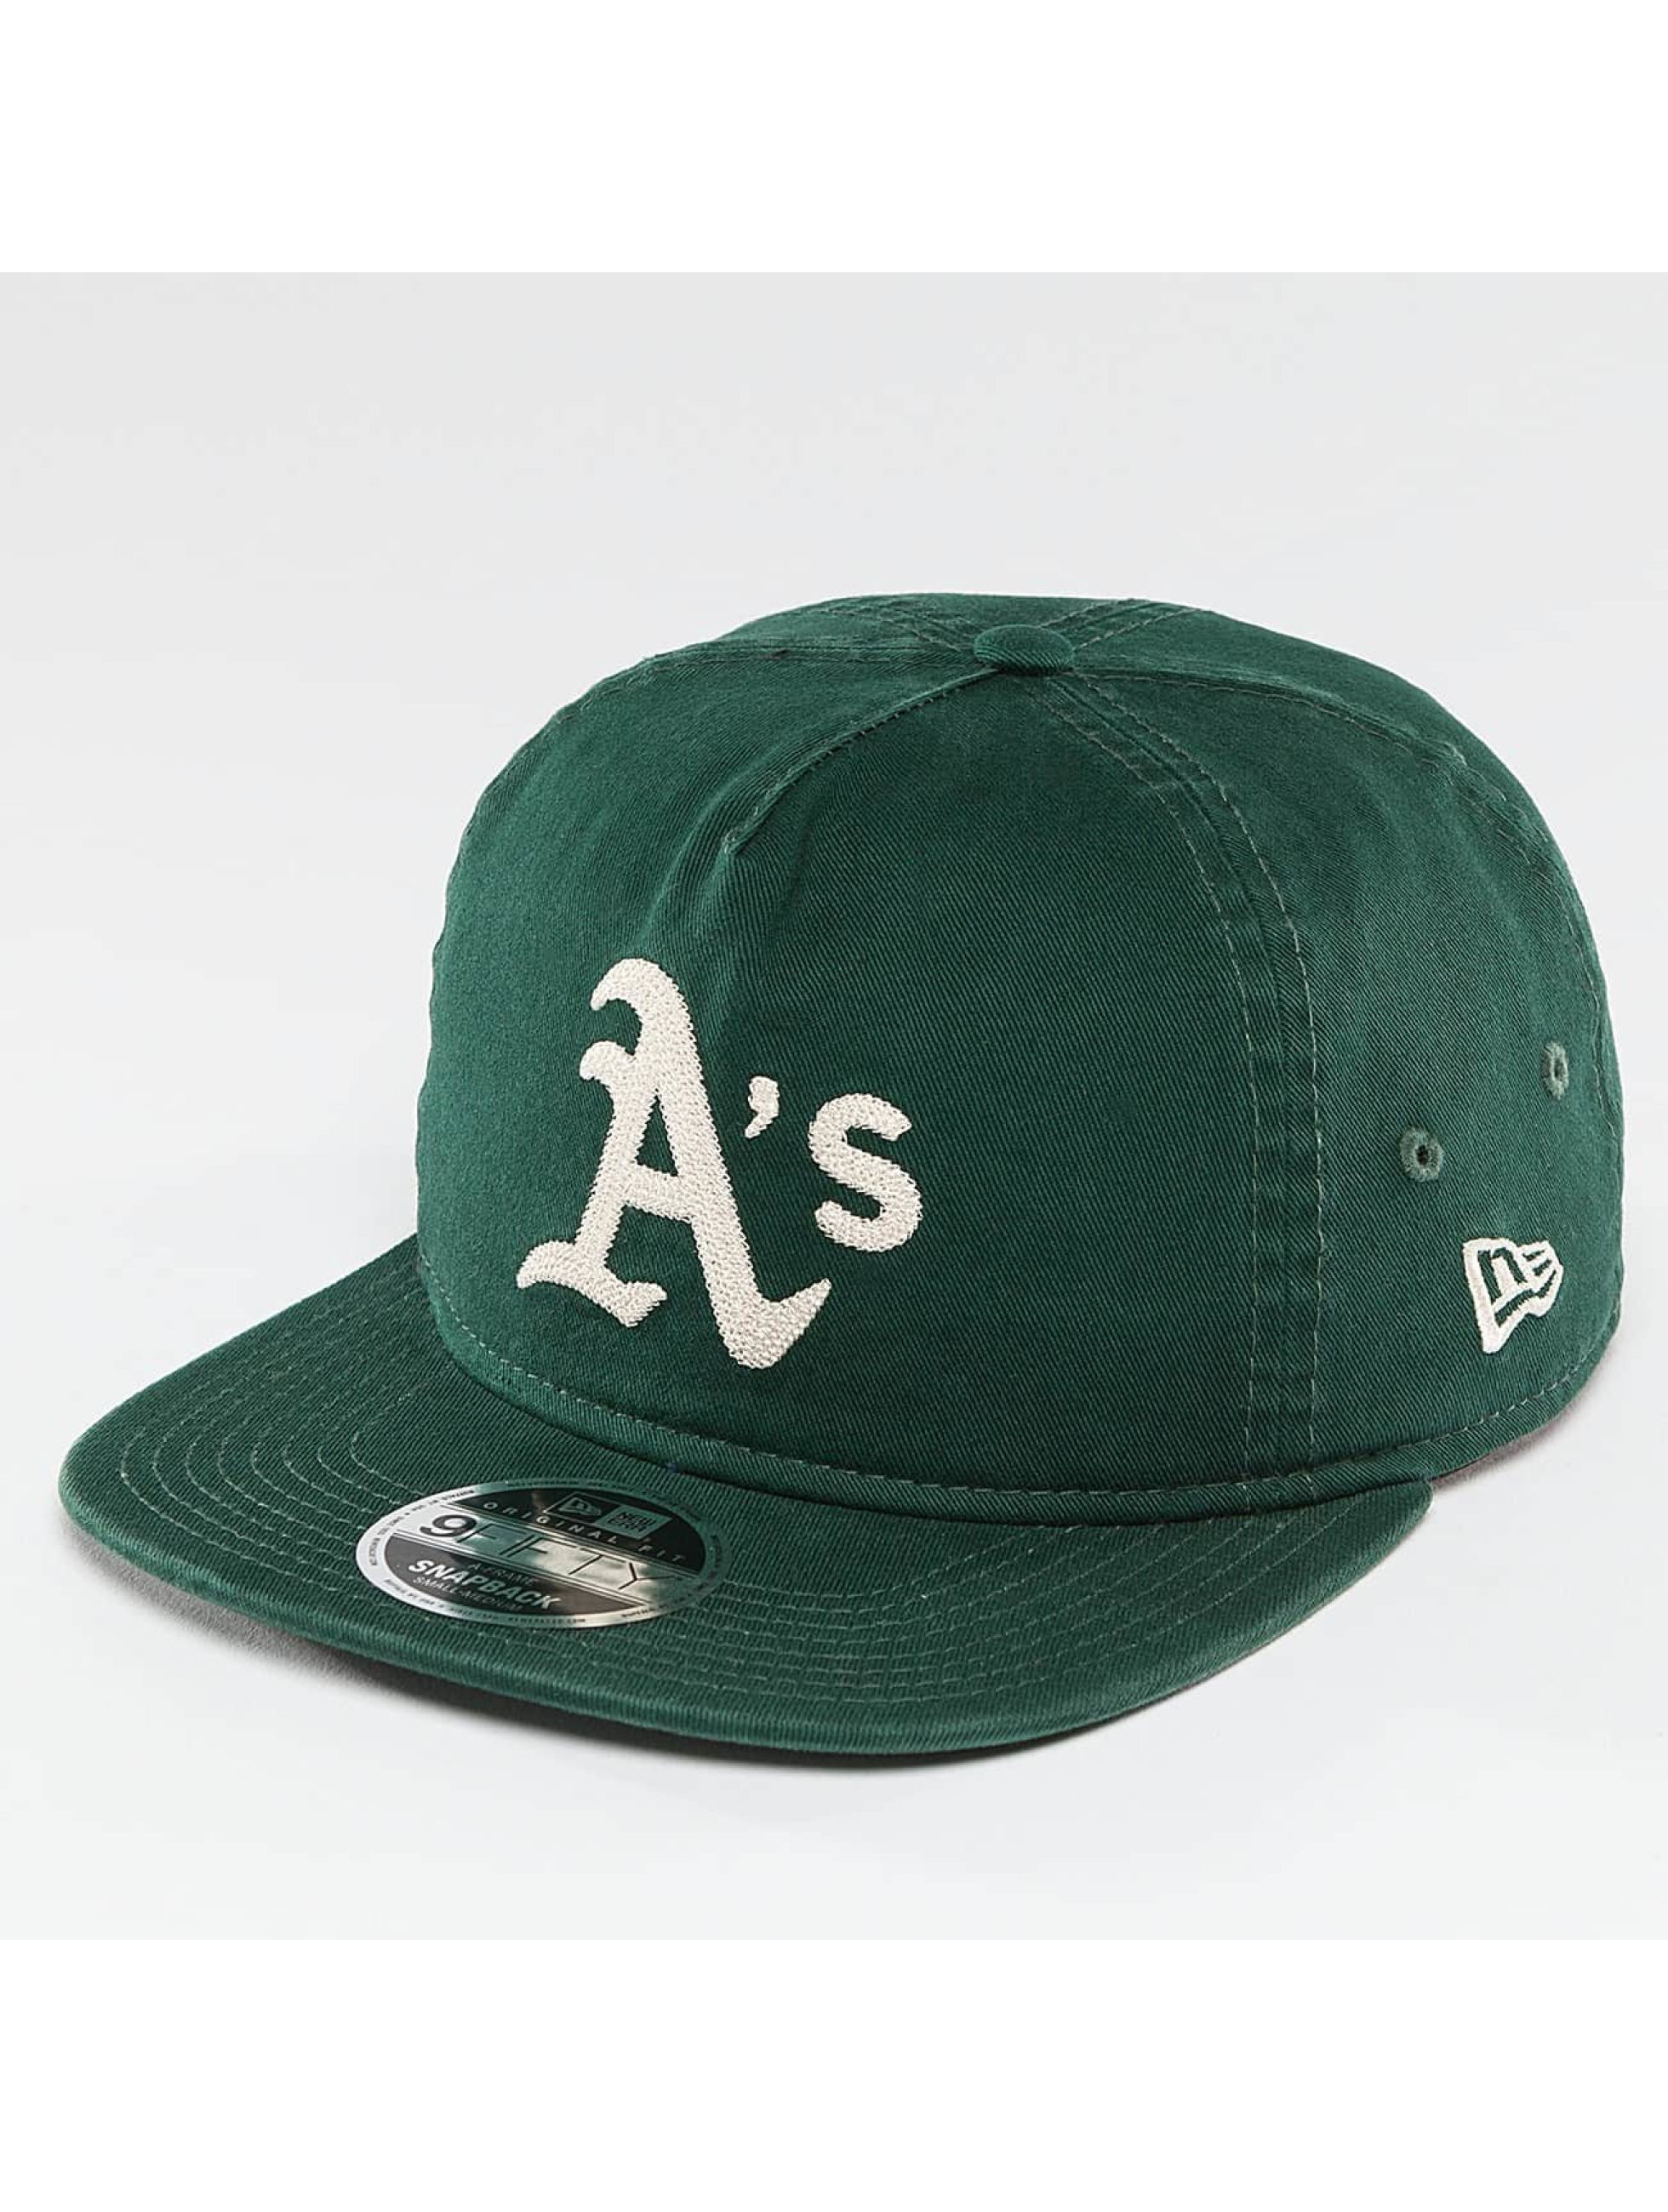 New Era Snapback Cap Chain Stitch Oakland Athletics green